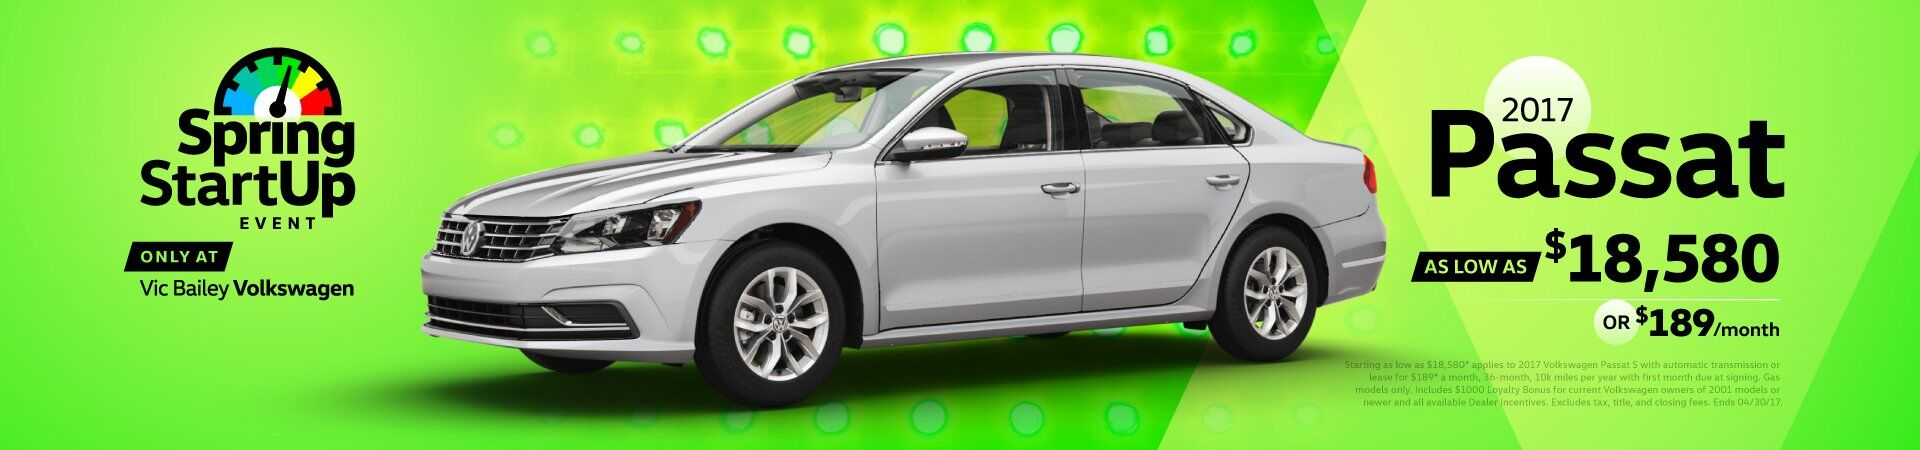 April Sales Event - Passat